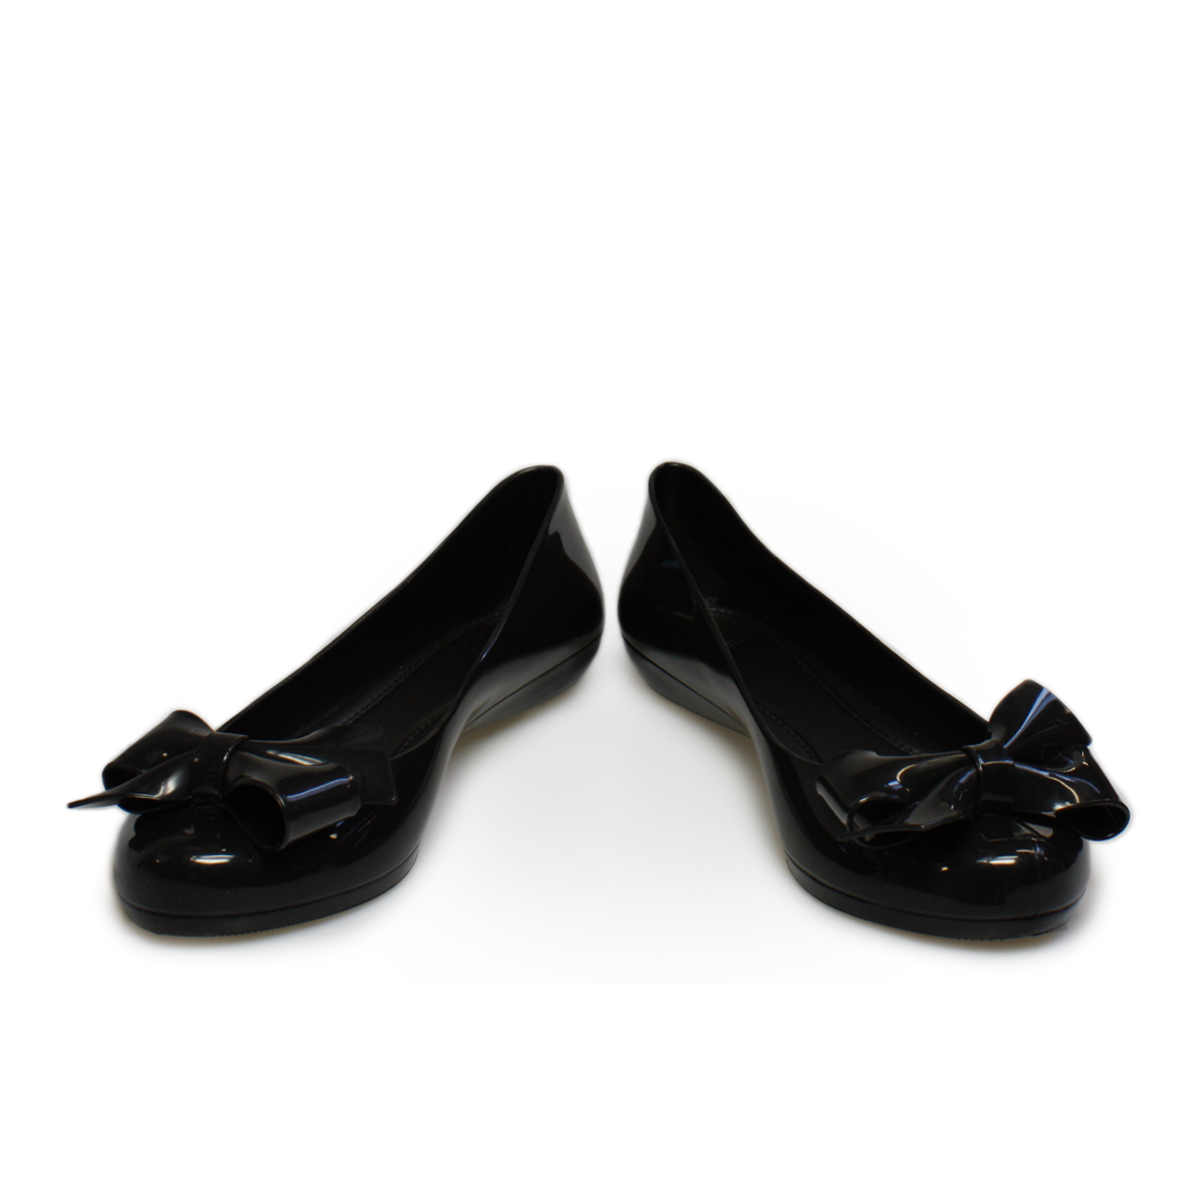 mel strawberry bow black bow pumps ballerina shoes size 3 8